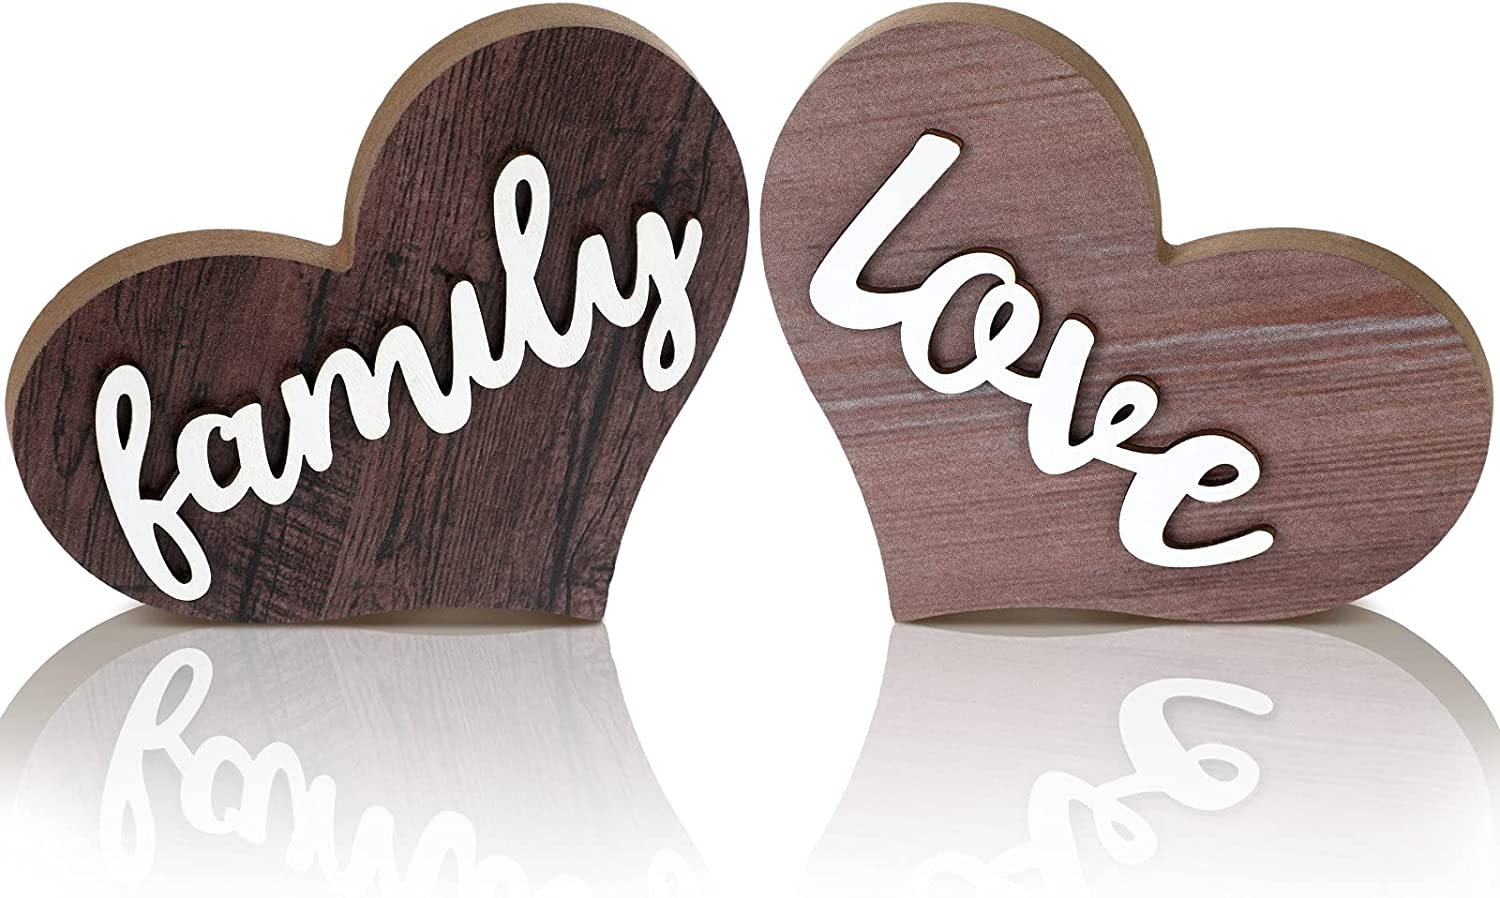 Jetec 2 Pieces Love Family Heart Wooden Sign Heart Shaped Wooden Decoration Rustic Table Sign Wooden Heart Table Centerpiece for Home Kitchen Living Room Bedroom Office Table Decor